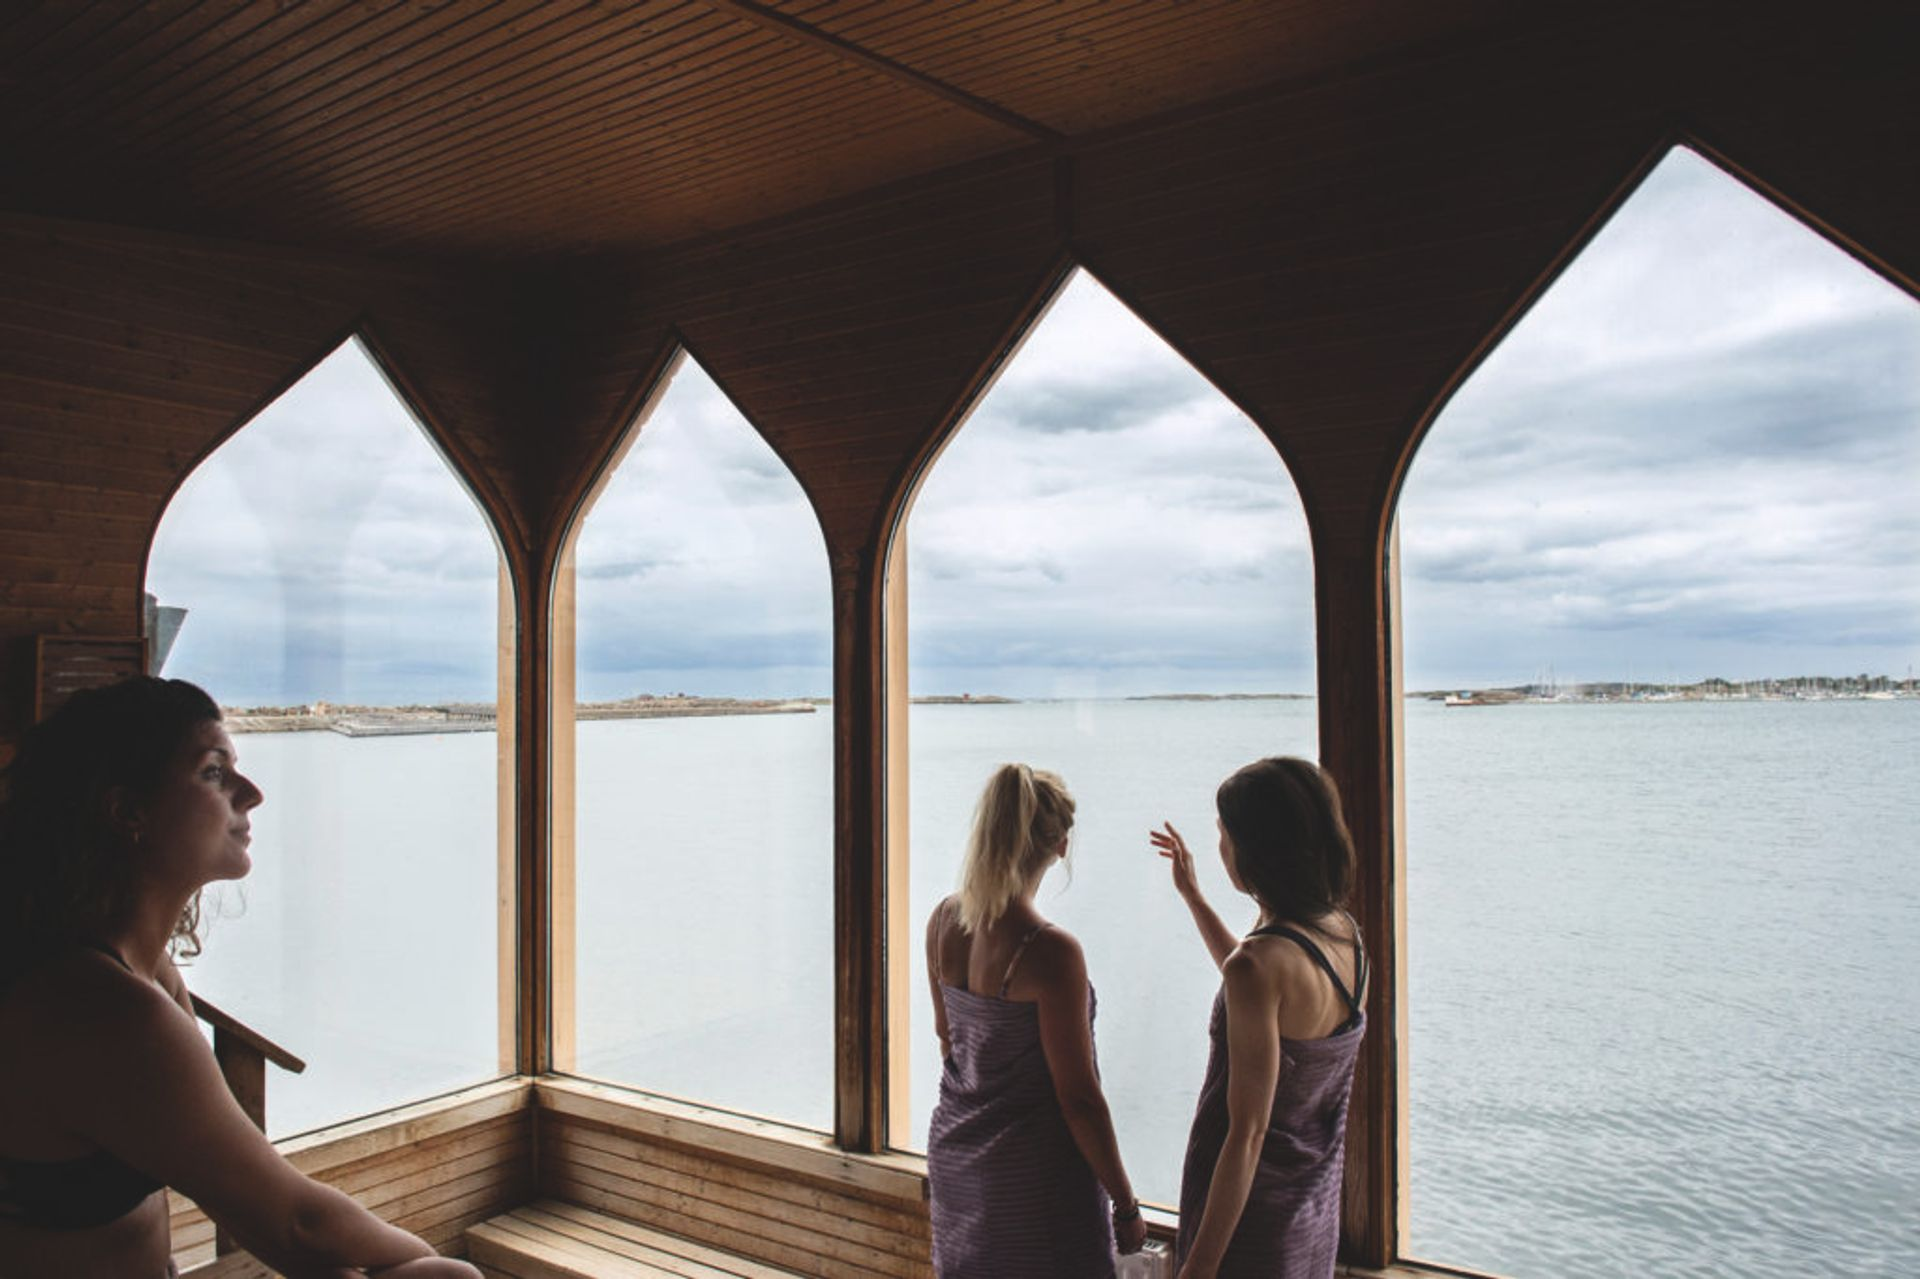 People in a sauna, looking out of the window.